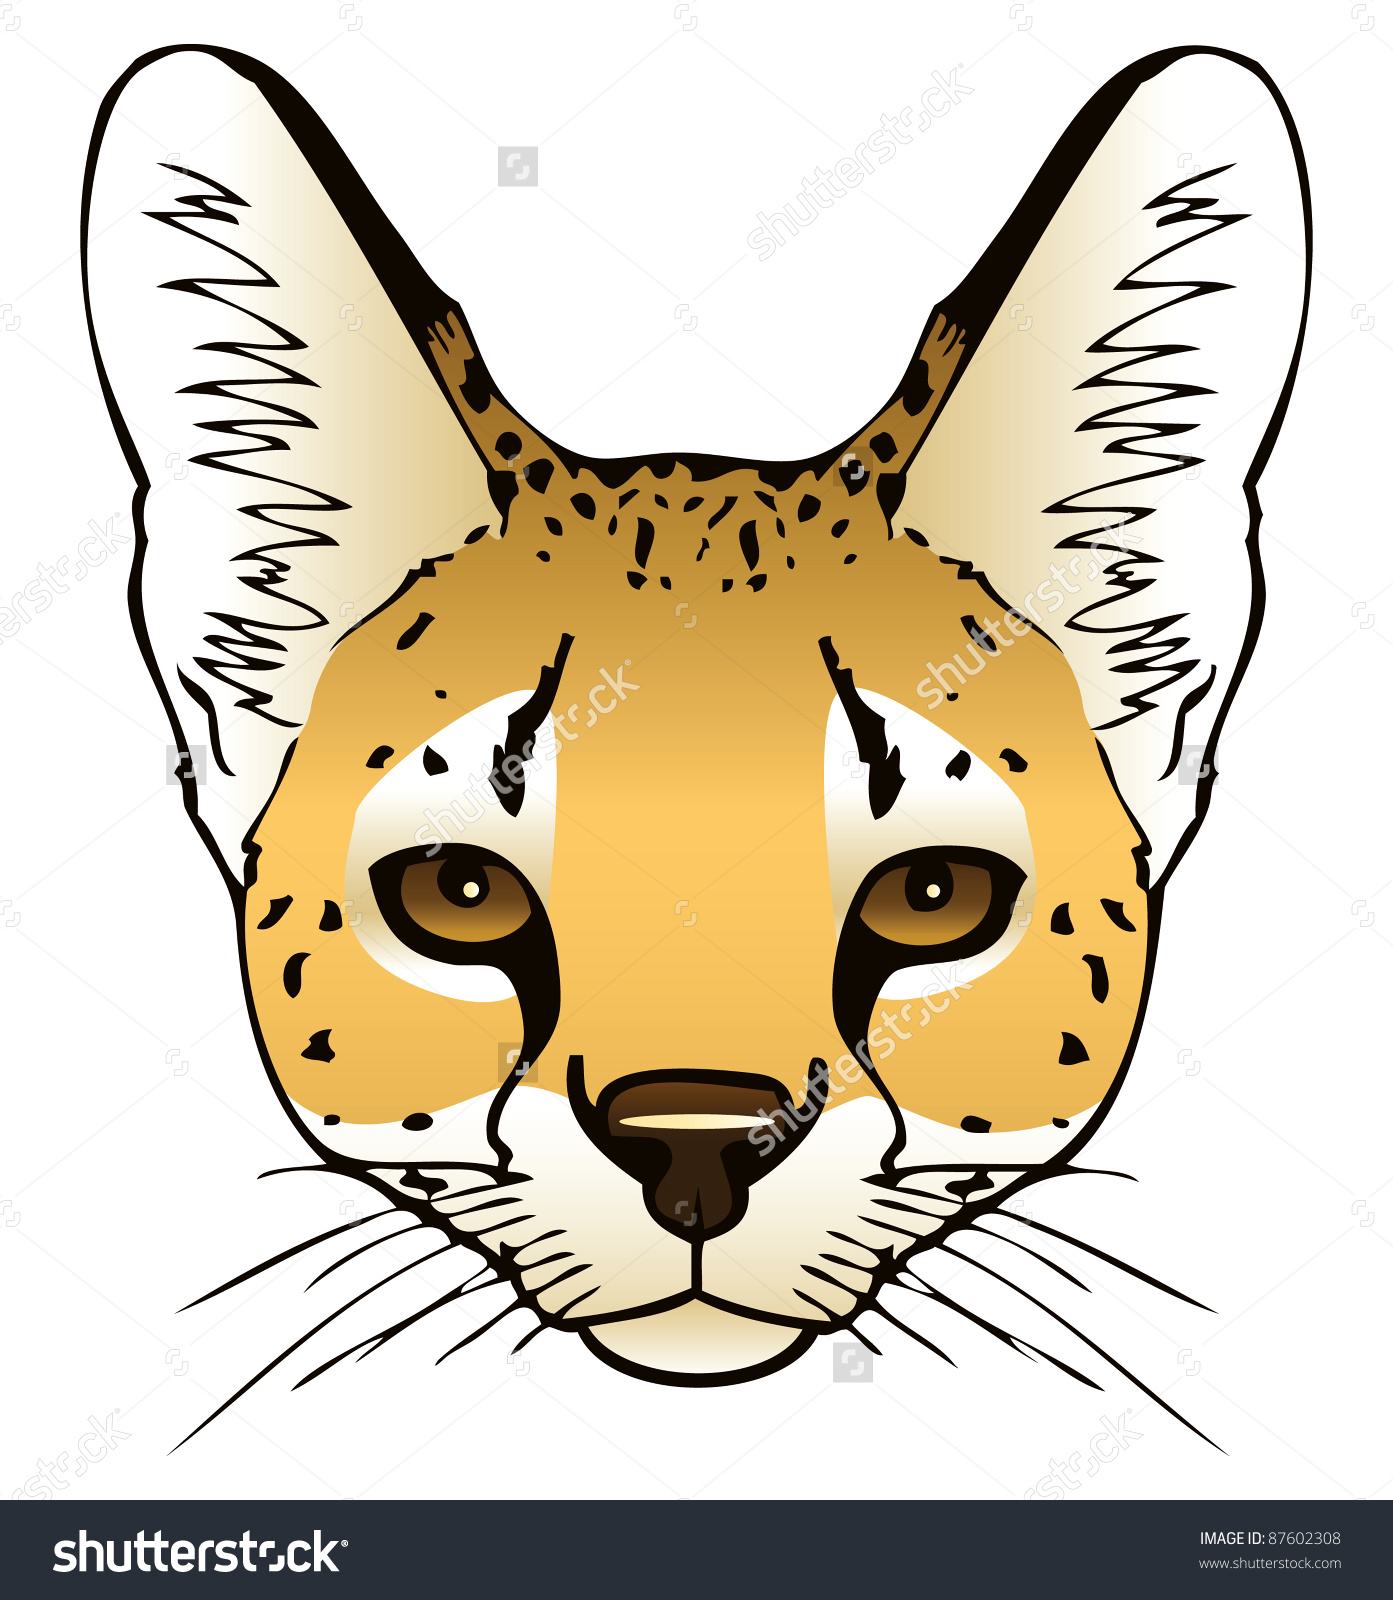 Serval clipart #9, Download drawings